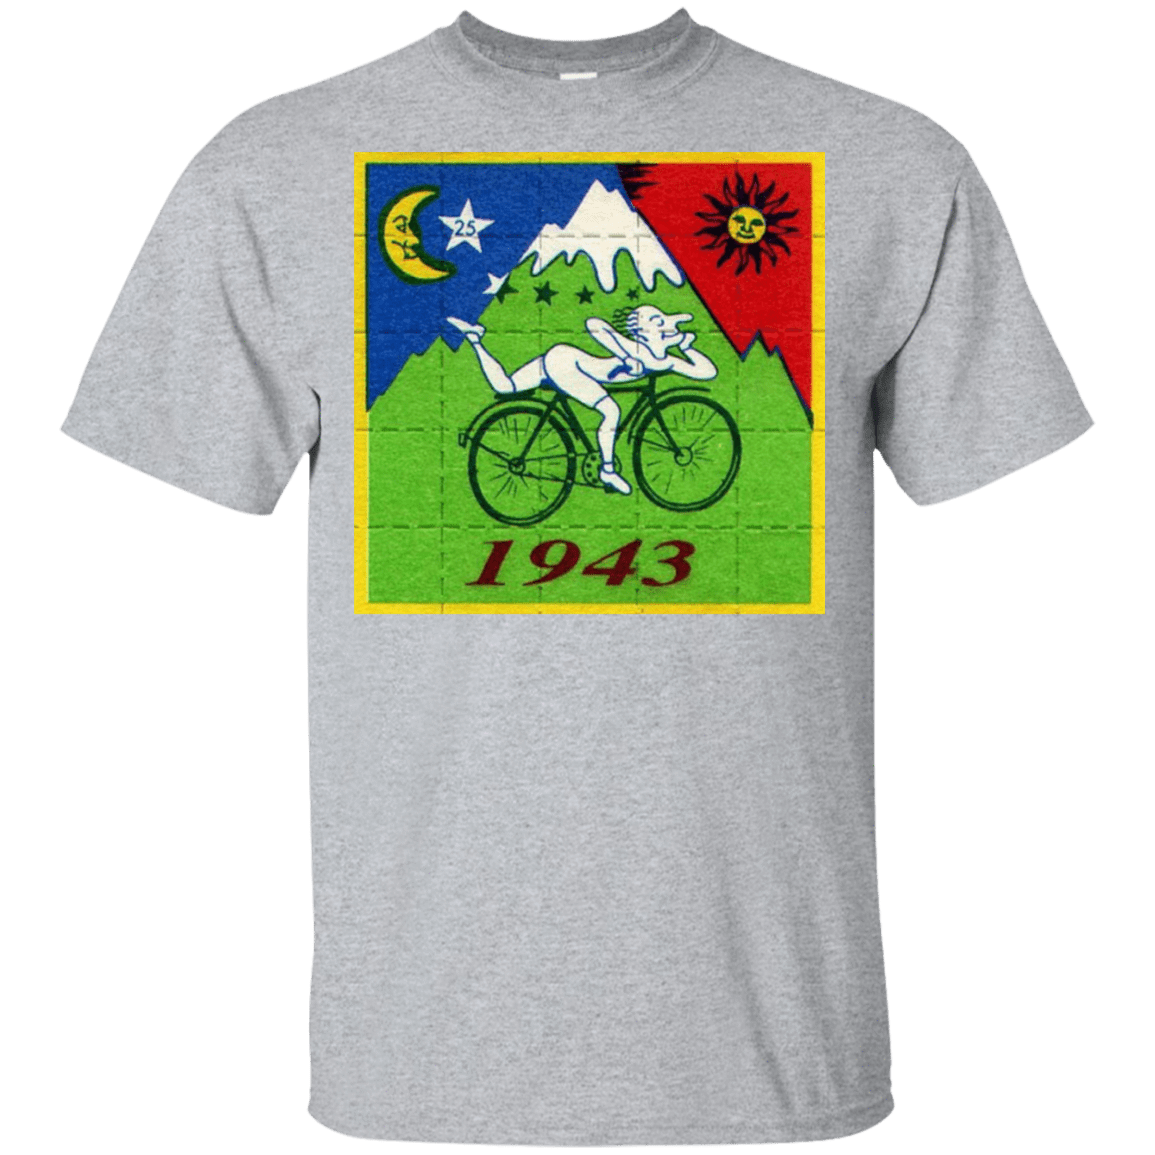 Bicycle Day 22-115-73565656-254 - Tee Ript